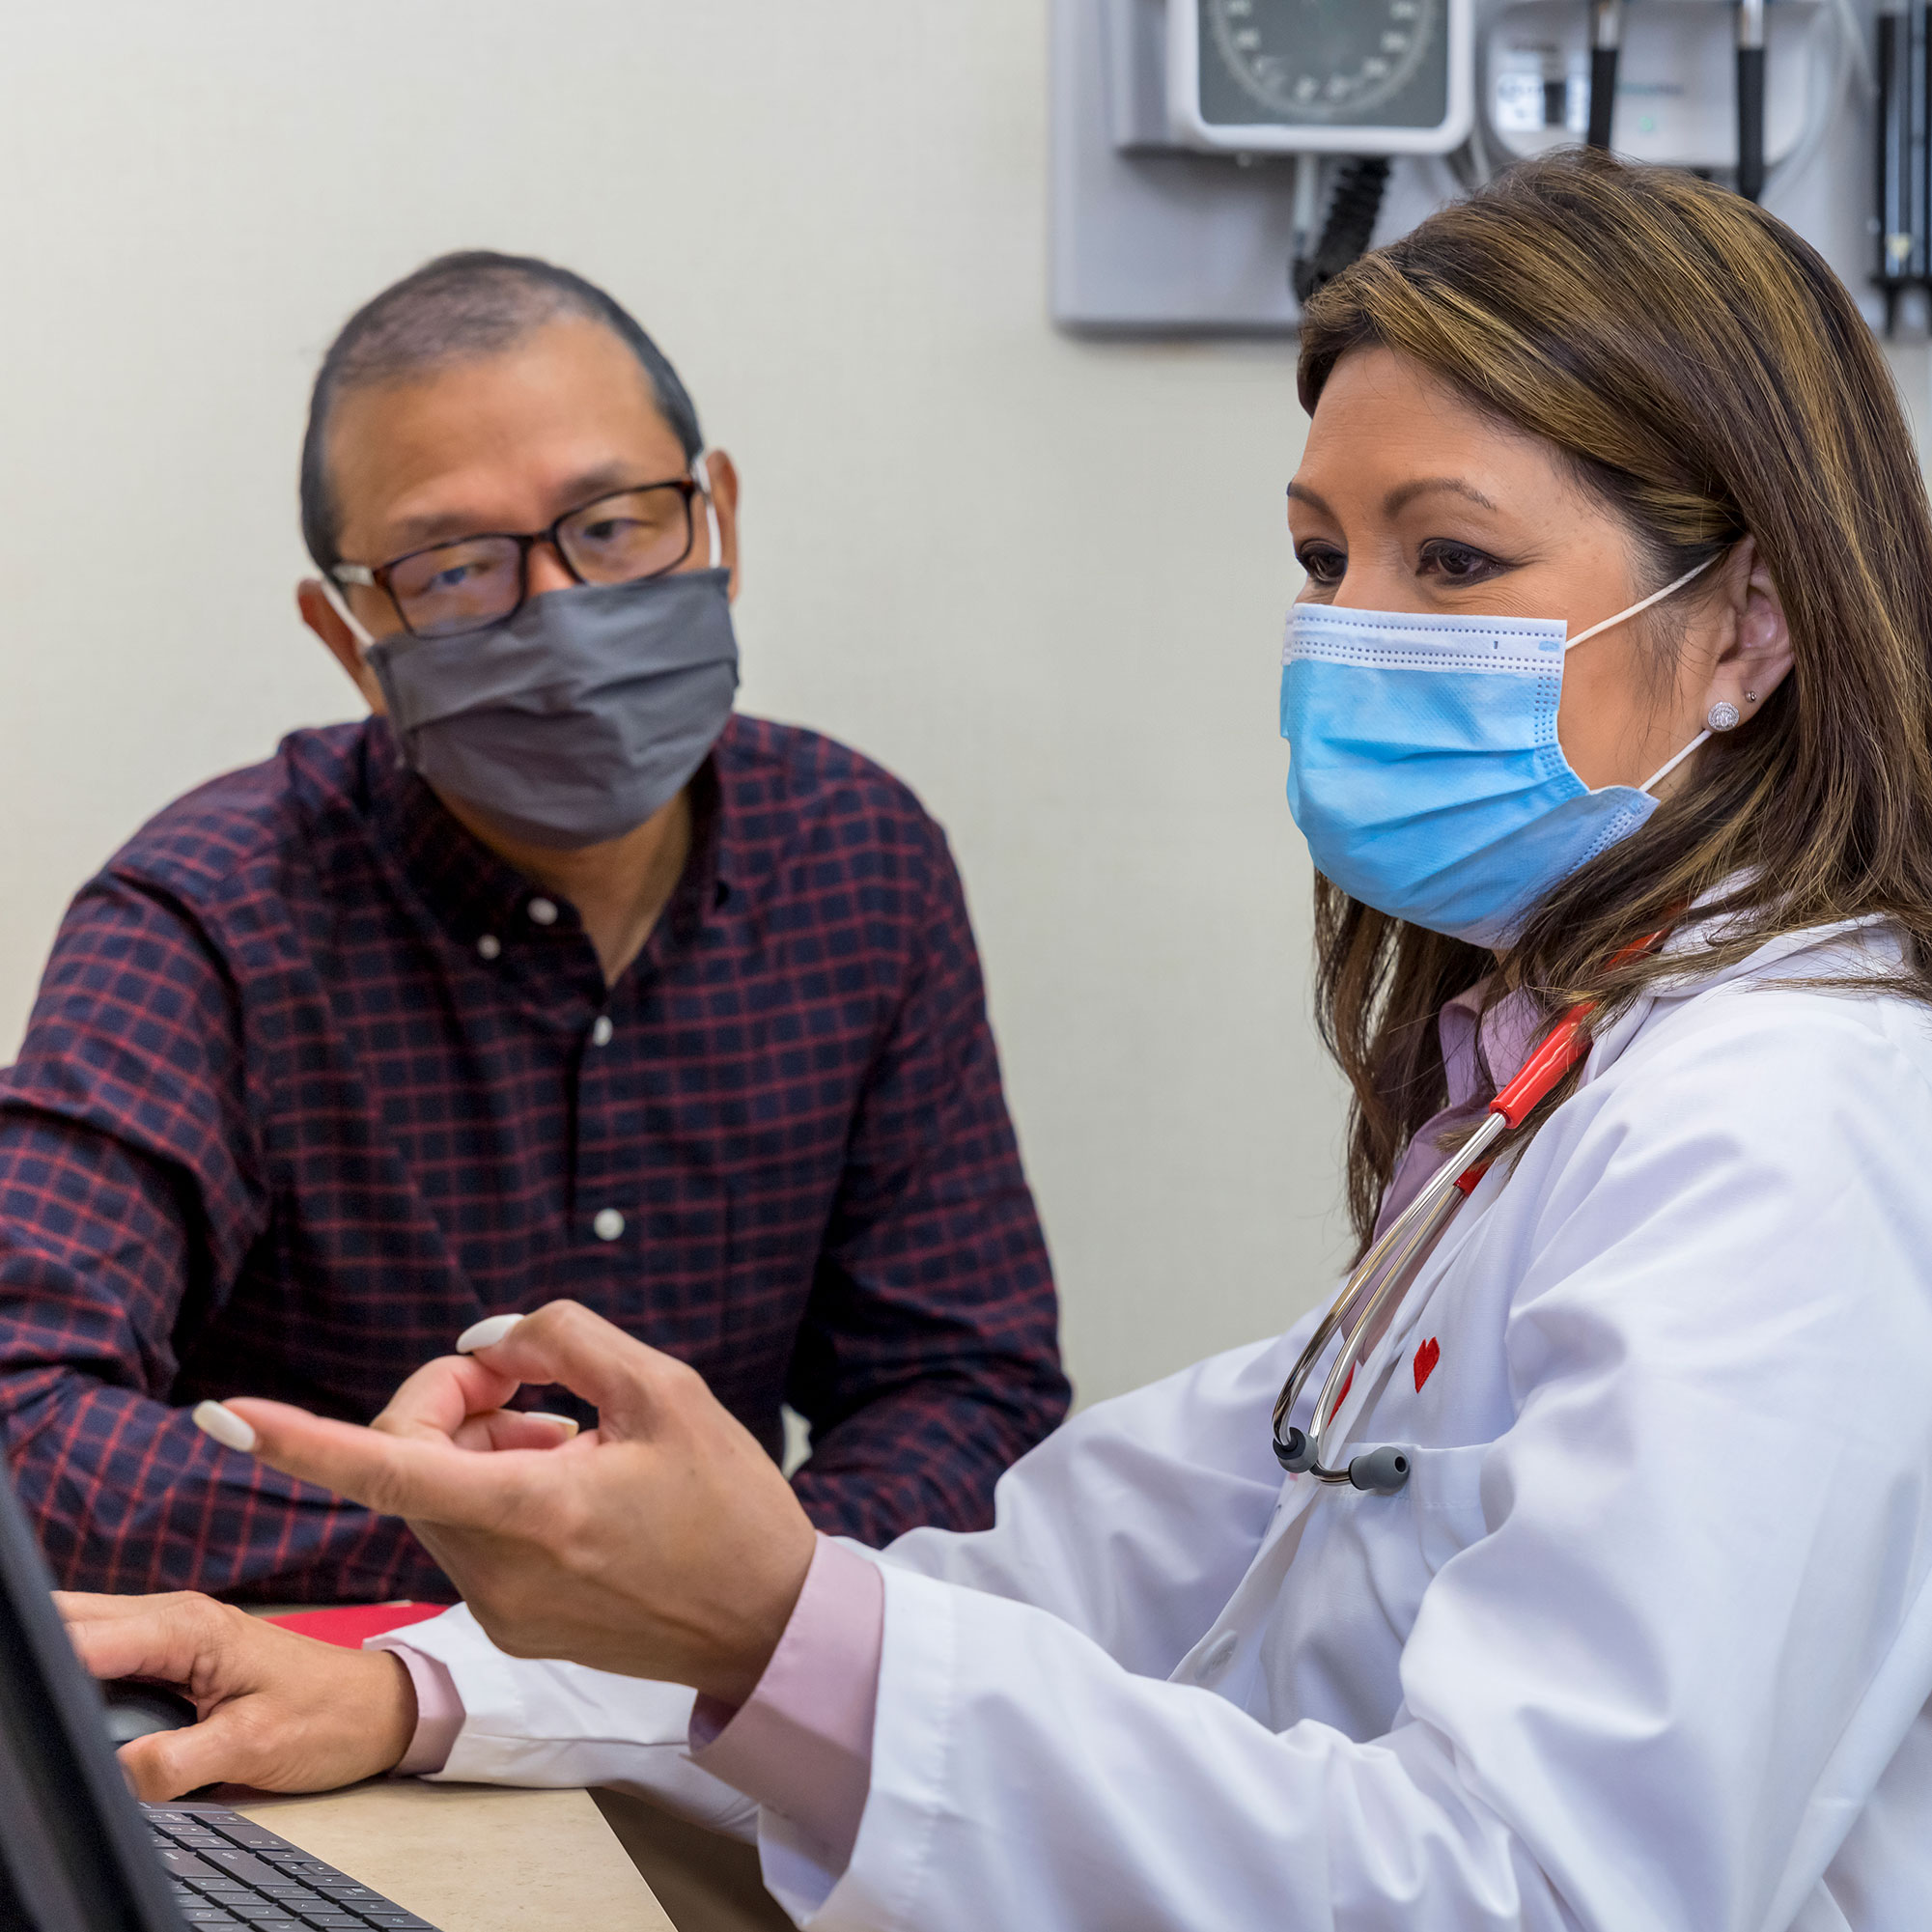 A physician reviews a patient's information with them.